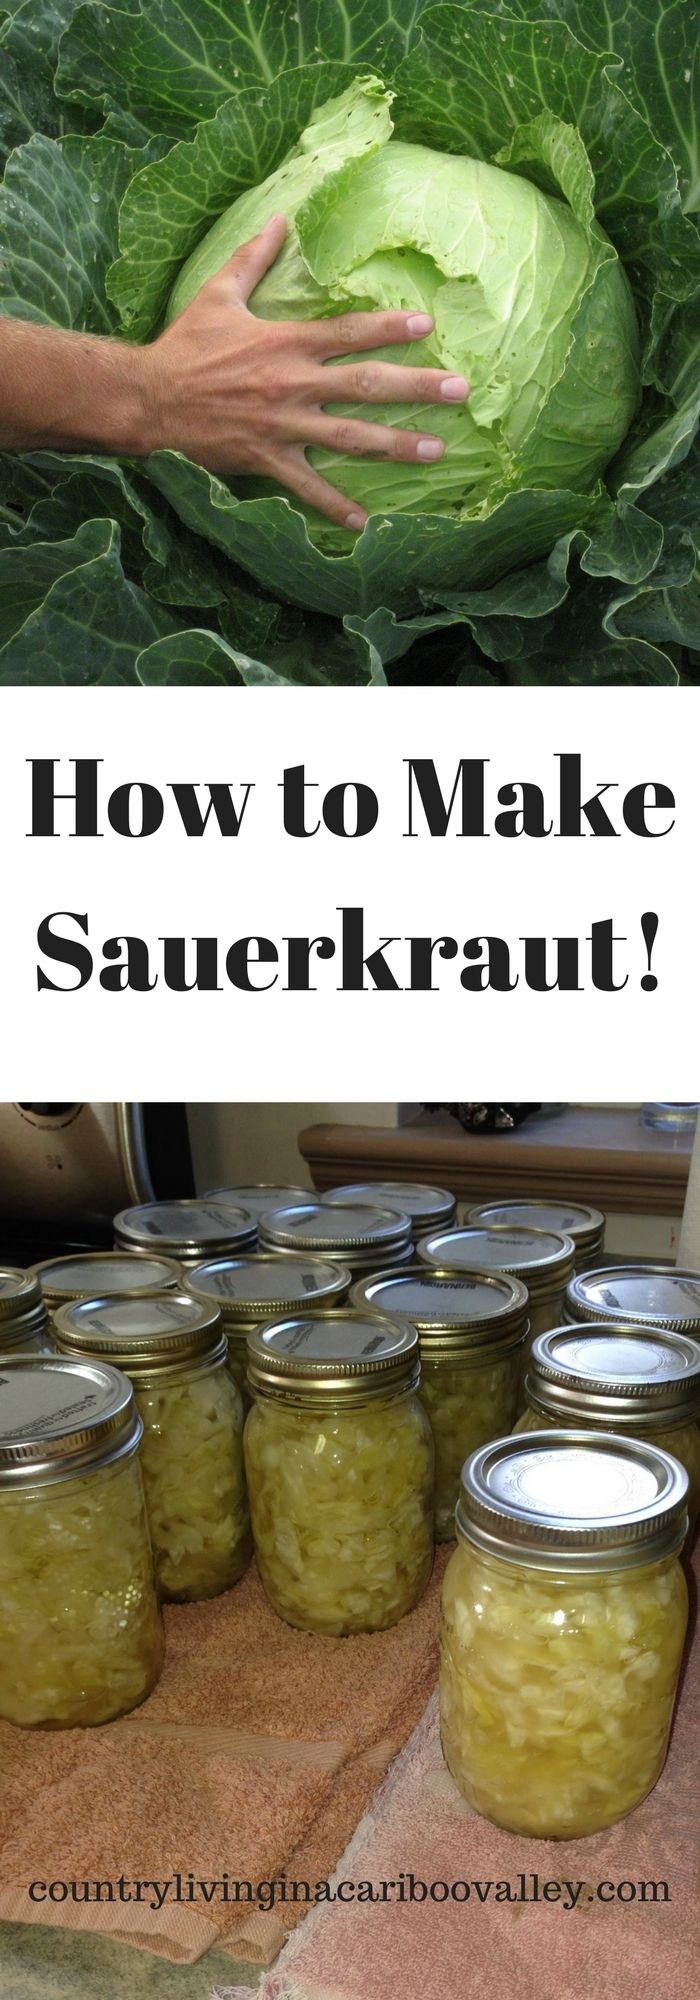 Make your own Sauerkraut using this recipe and easy process!